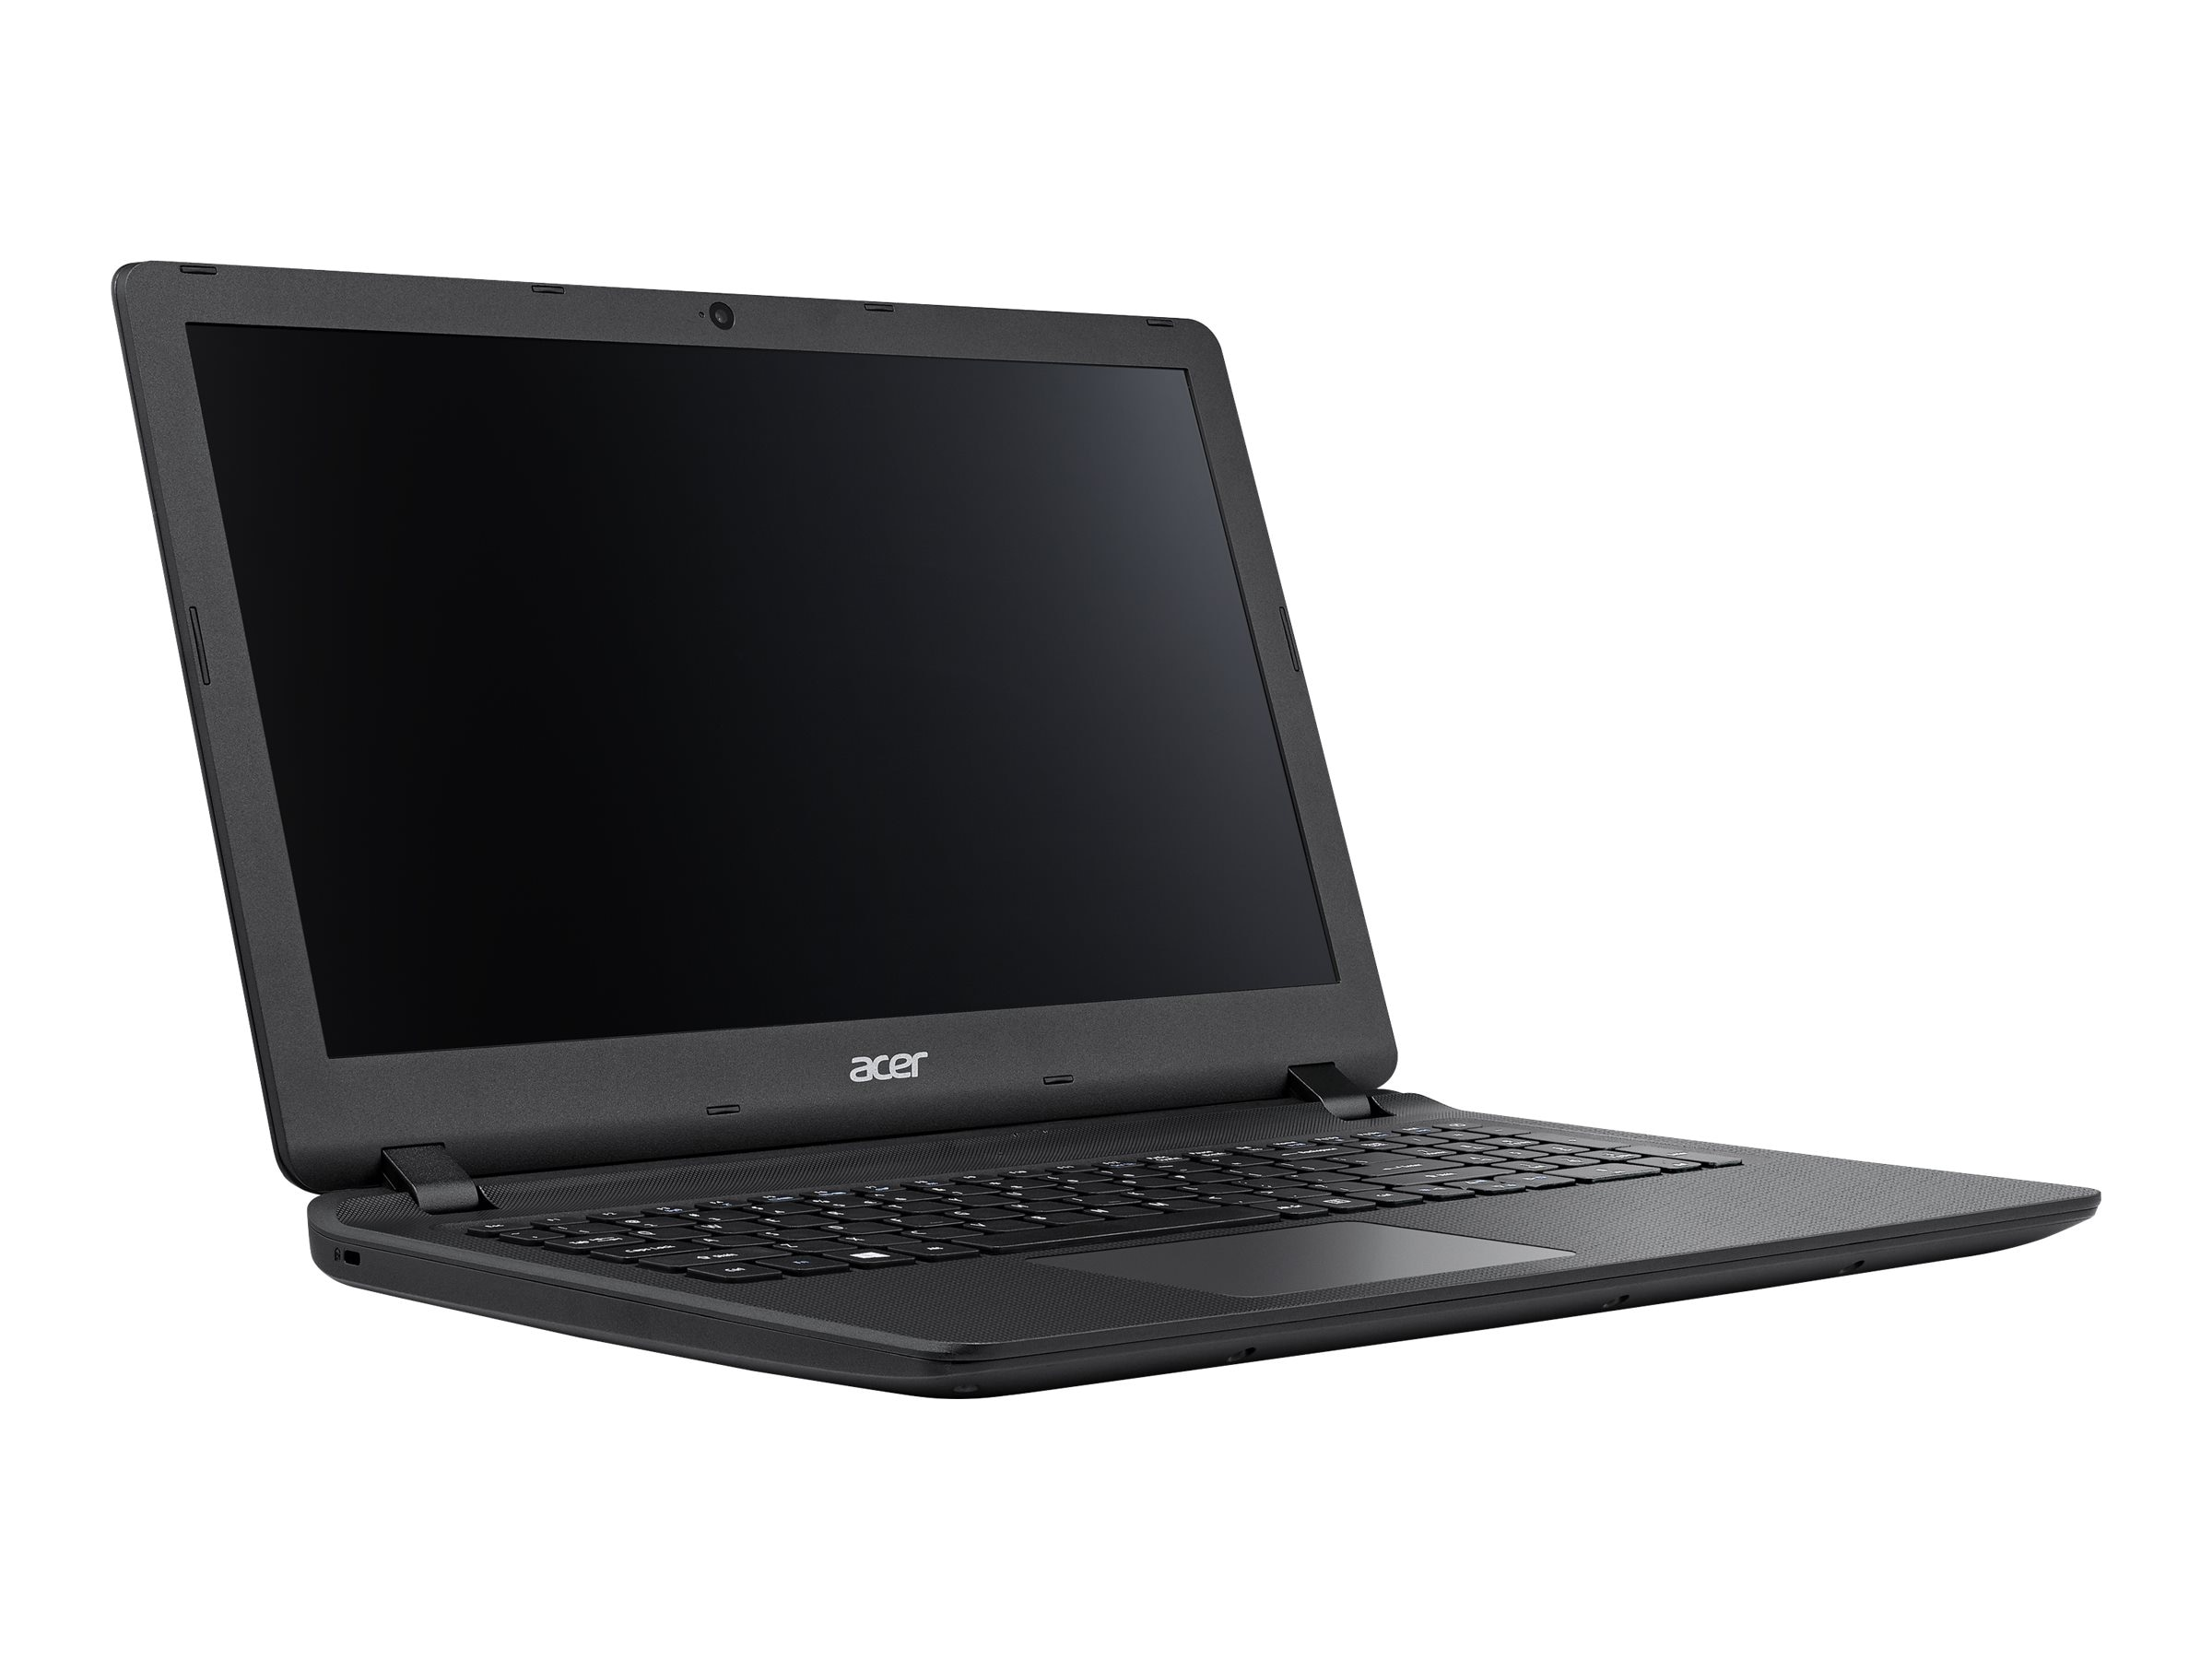 Acer NX.GD0AA.002 Image 3